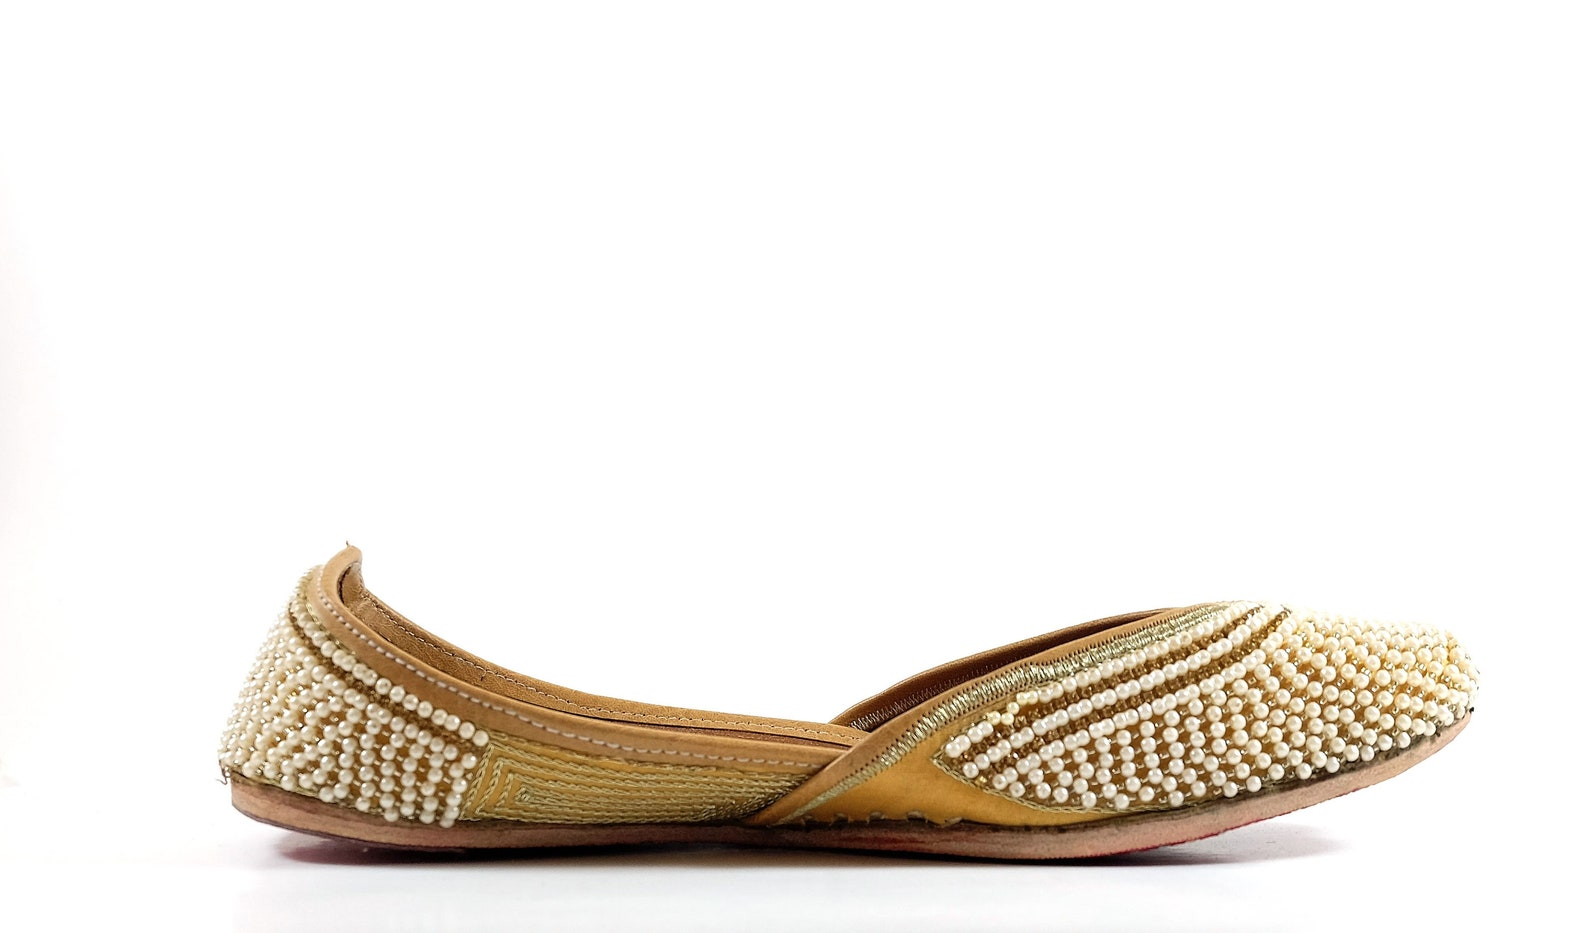 moti - handmade embroidered leather ballet flats - pearl juttis - traditional jutti / mojari / khussa with a contemporary twist